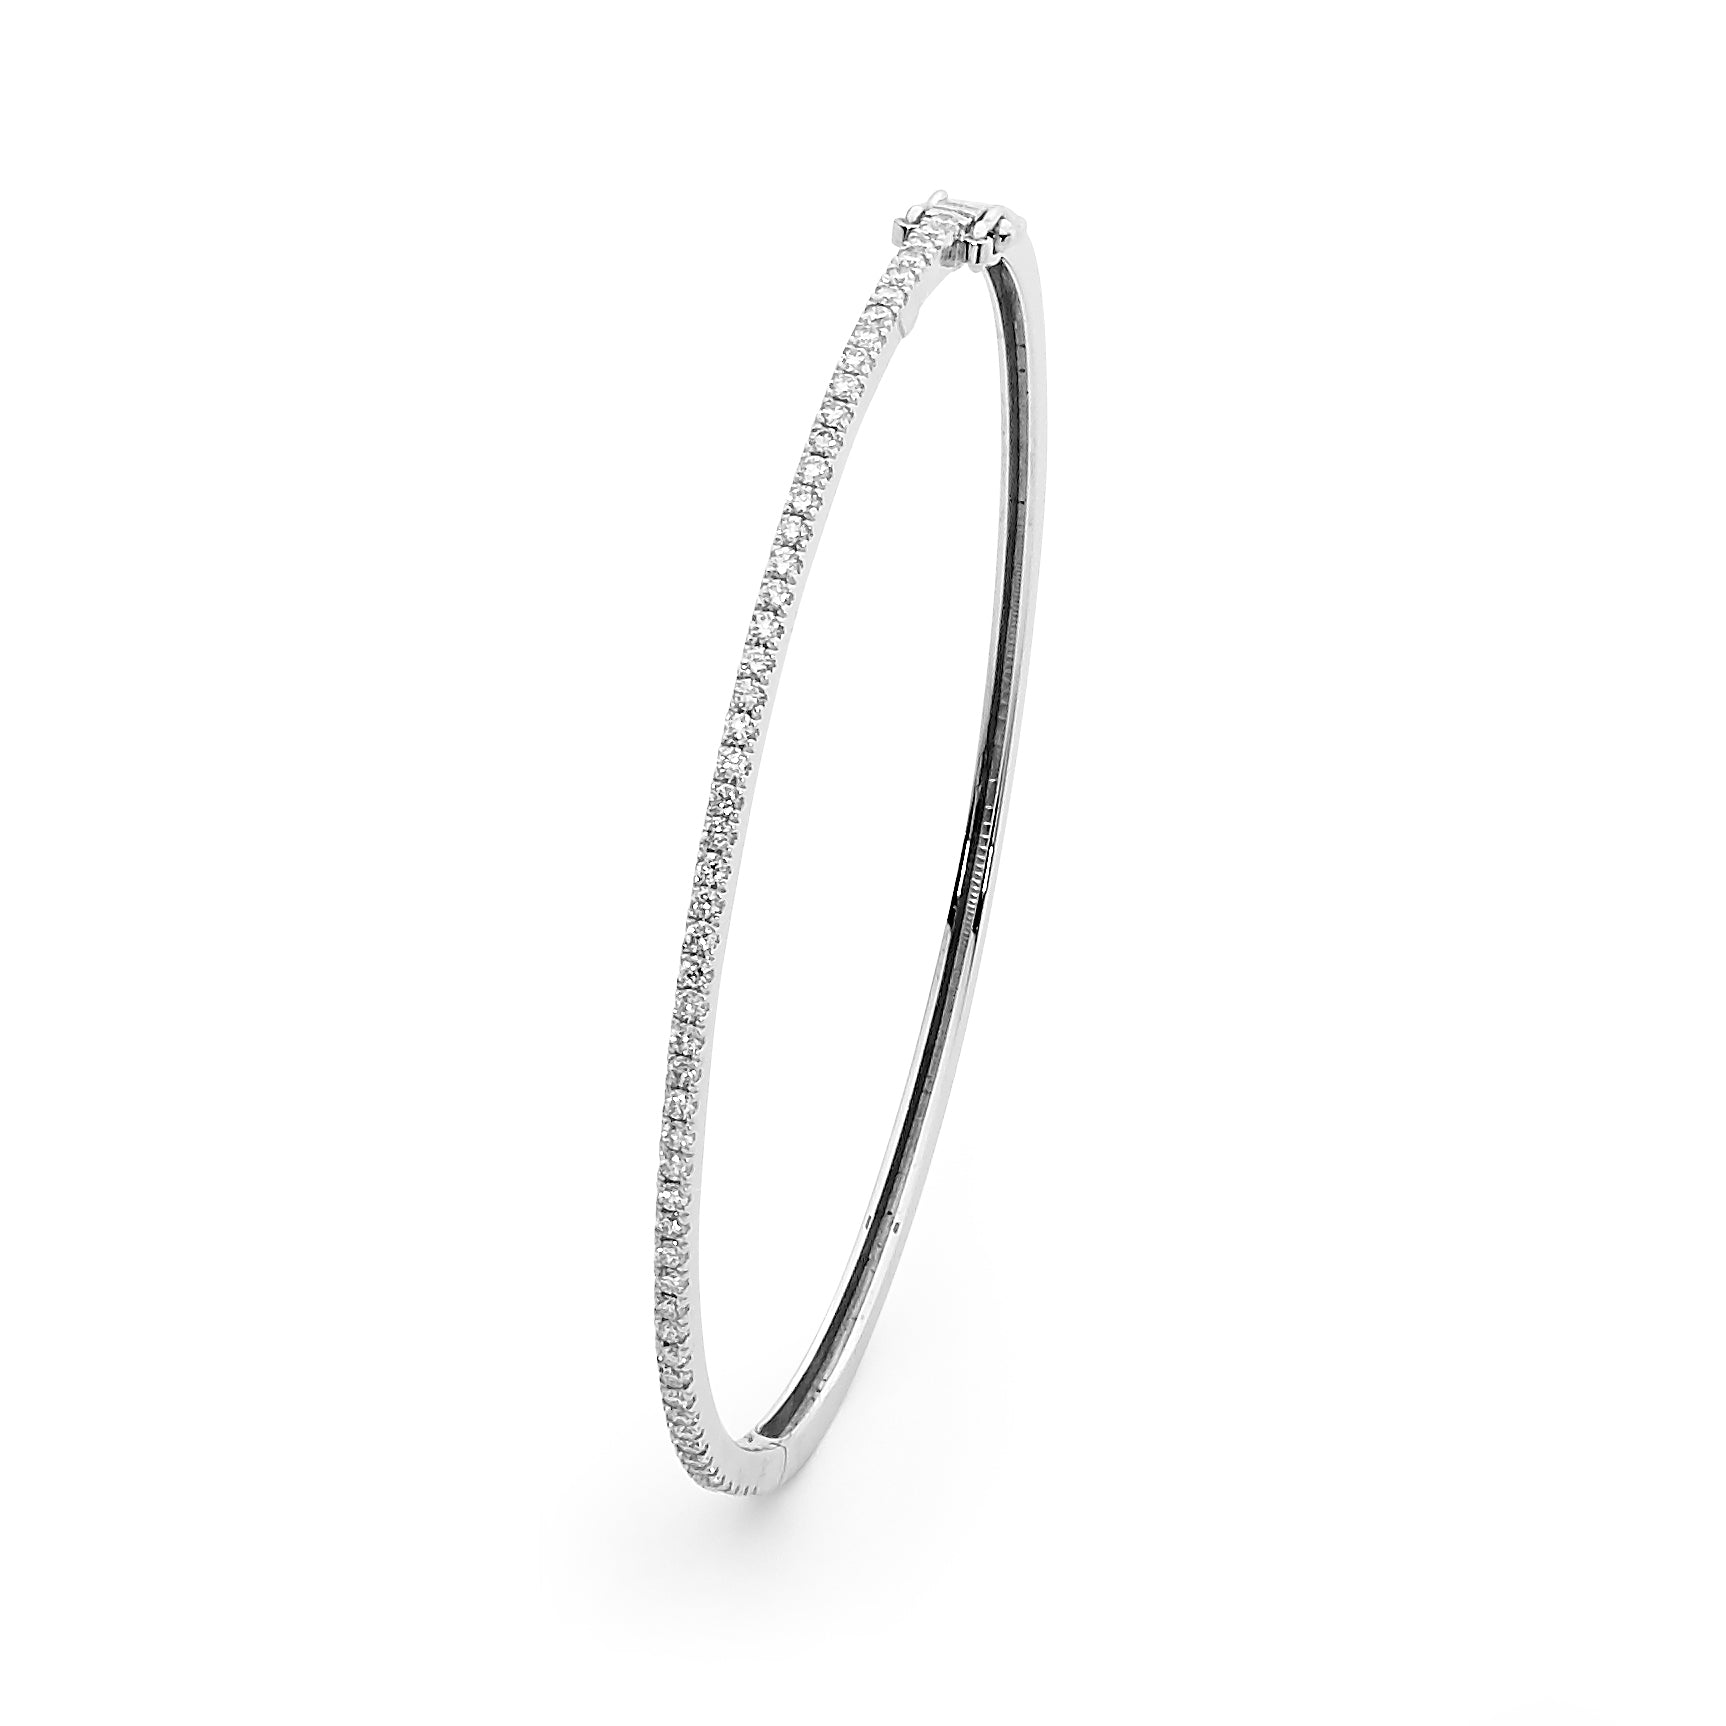 diamond add pin bracelets modern the sparkle tennis thin bangle to classic bracelet winter your that fashion these are bangles secure look twist extra